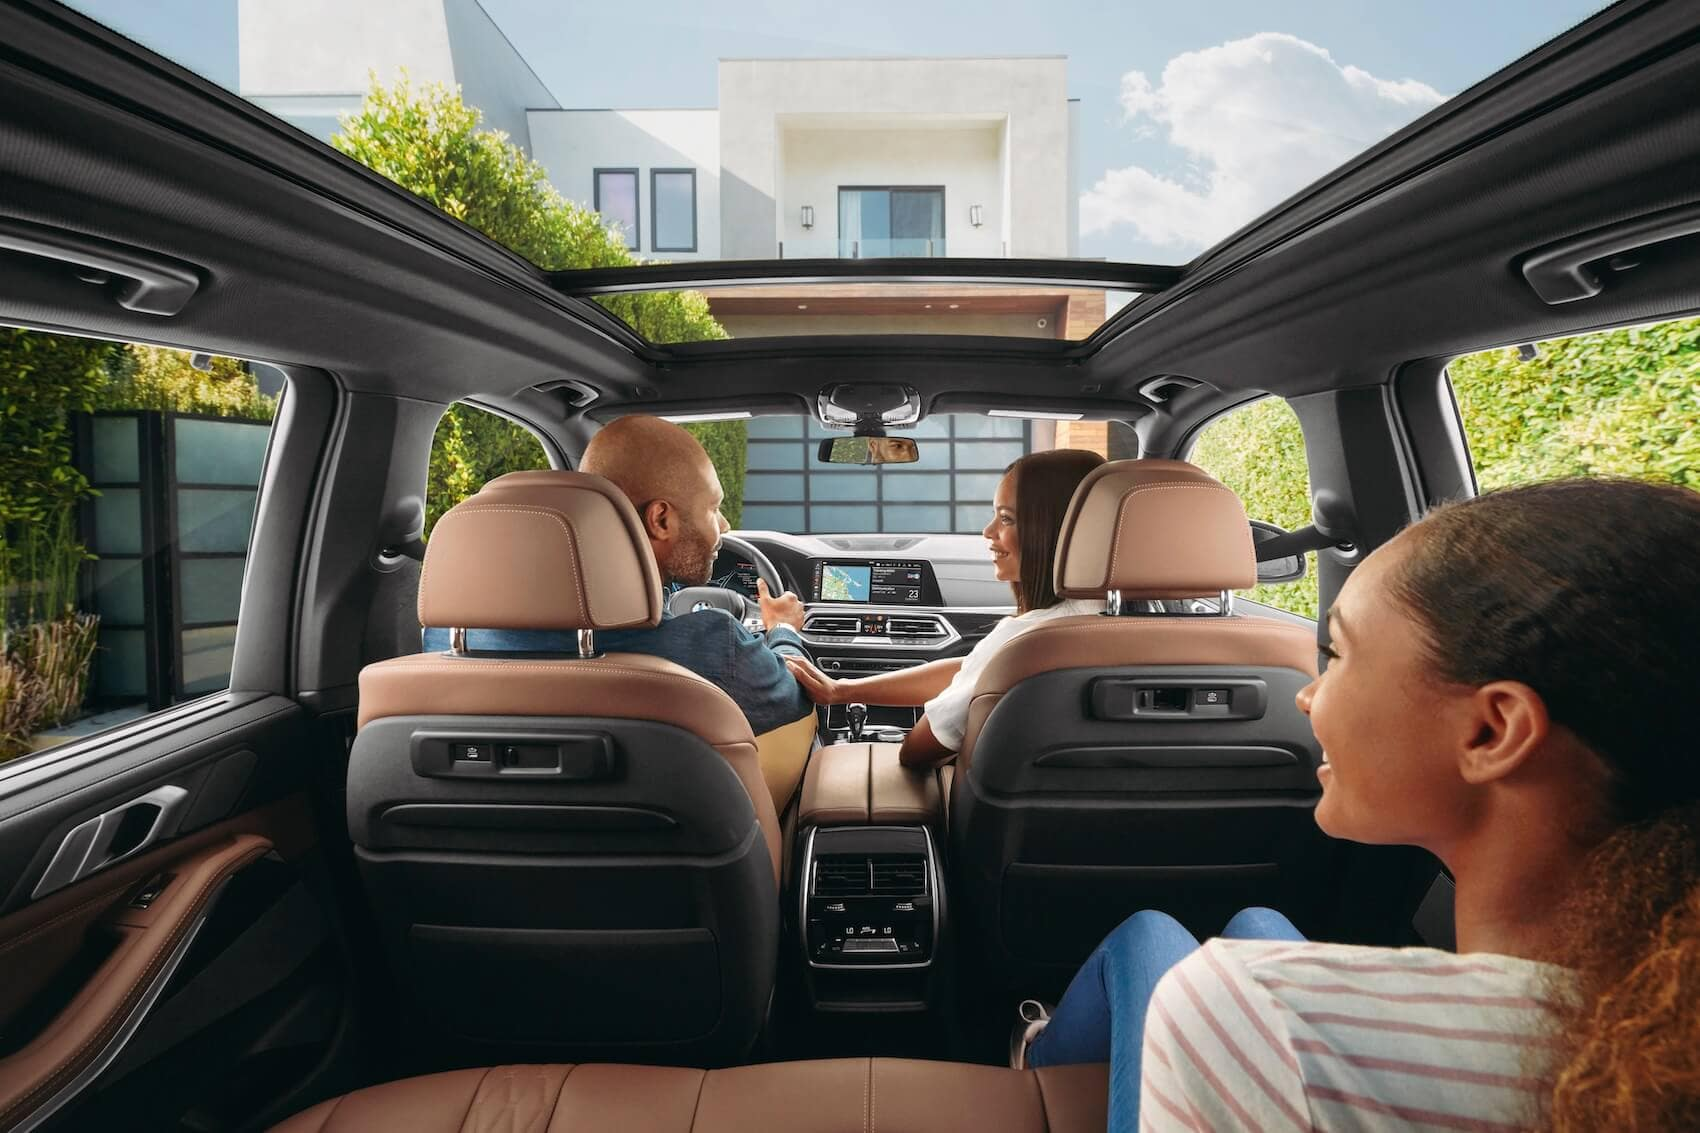 BMW X5 Interior: Space and Features Inside the BMW X5